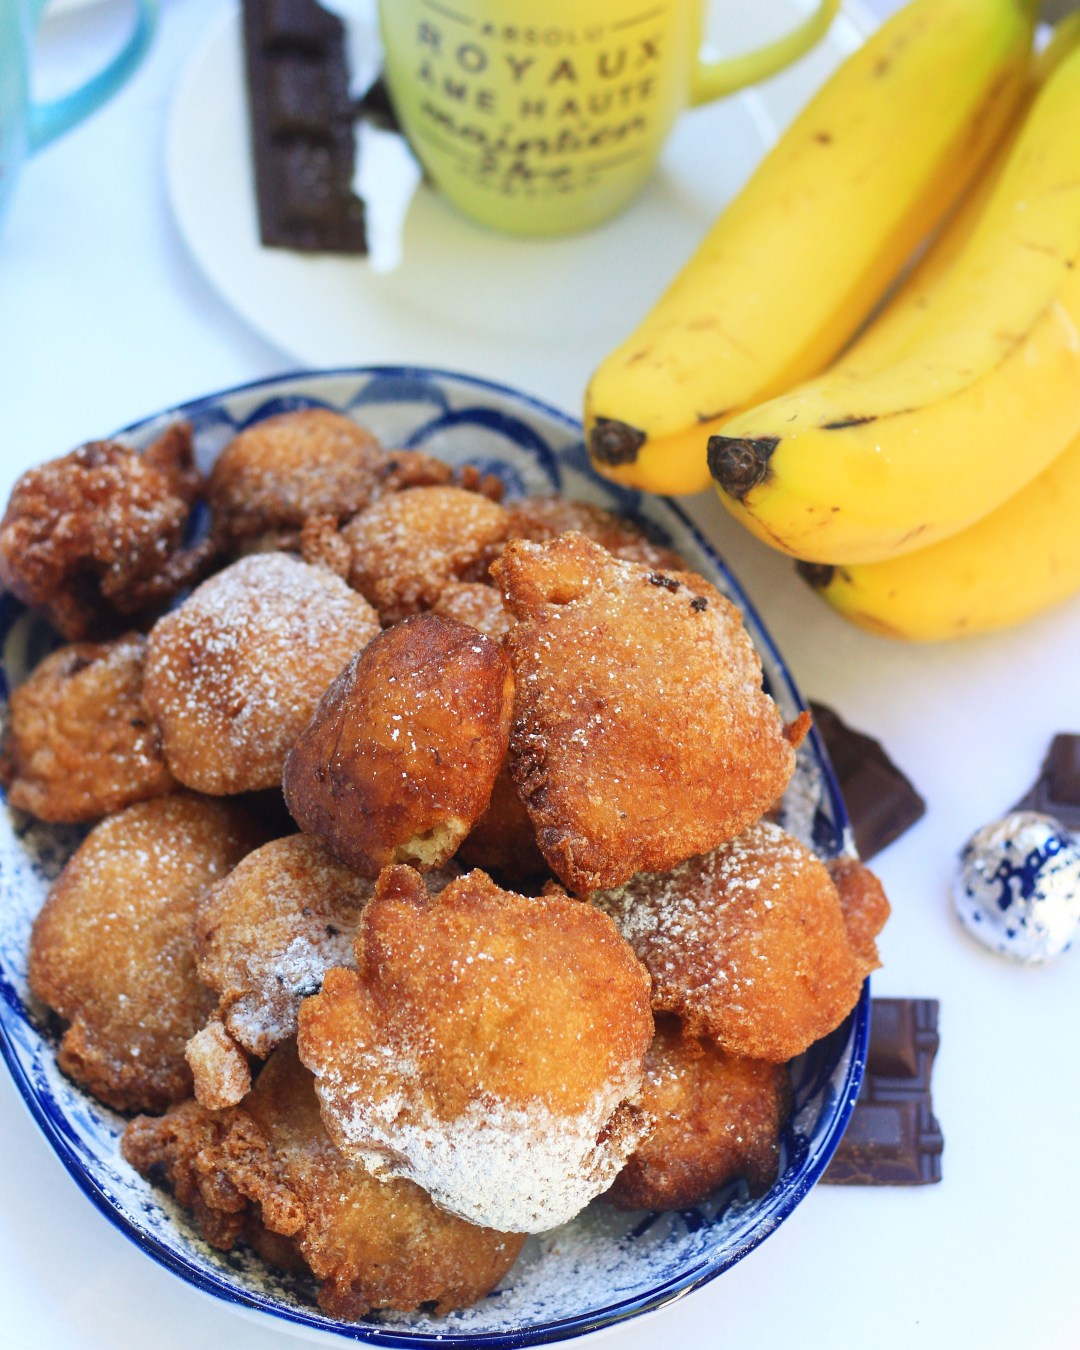 Classic Nigerian banana puff puff with a twist; soft, chewy and filled with bananas! Add a cup of MAX Indulge Mocha + Salted Caramel, and you've got the perfect afternoon snack!